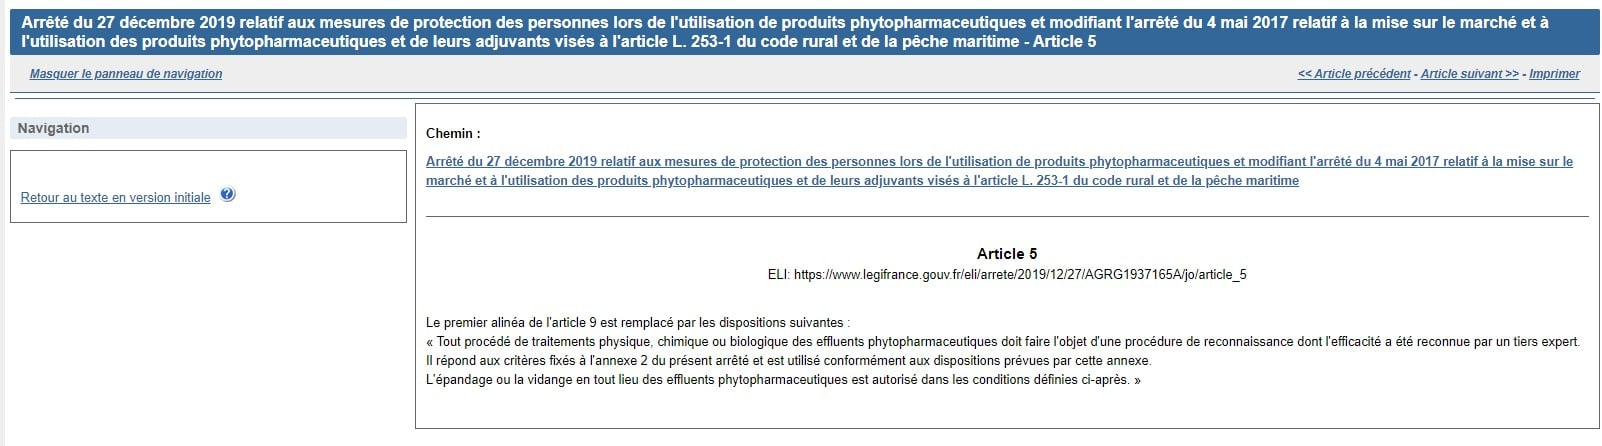 Modification de l'article 9